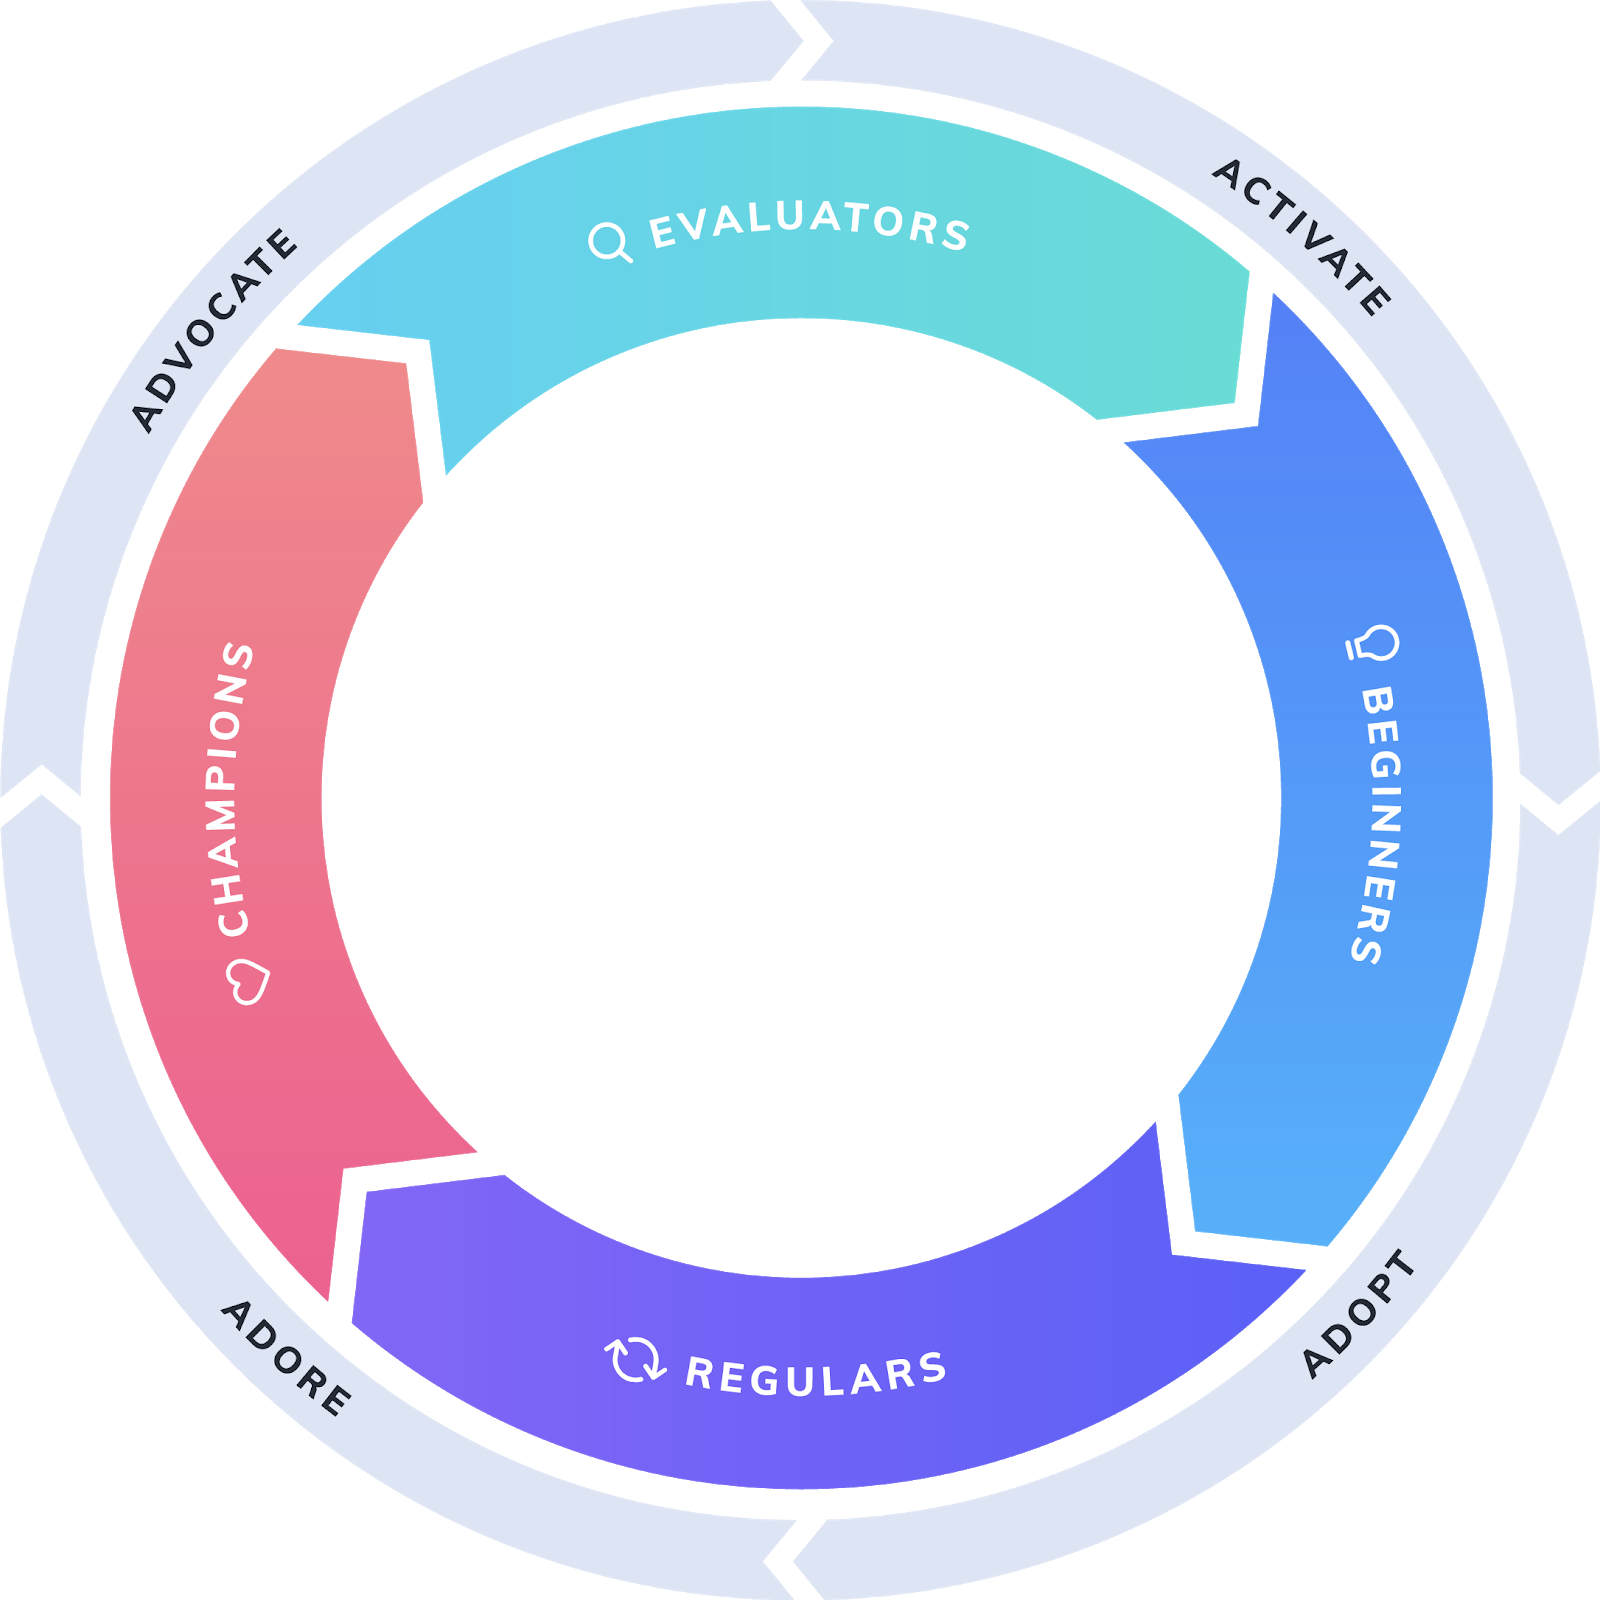 product led growth flywheel from appcues shoeing how product decisions impact the user journey which impacts business growth